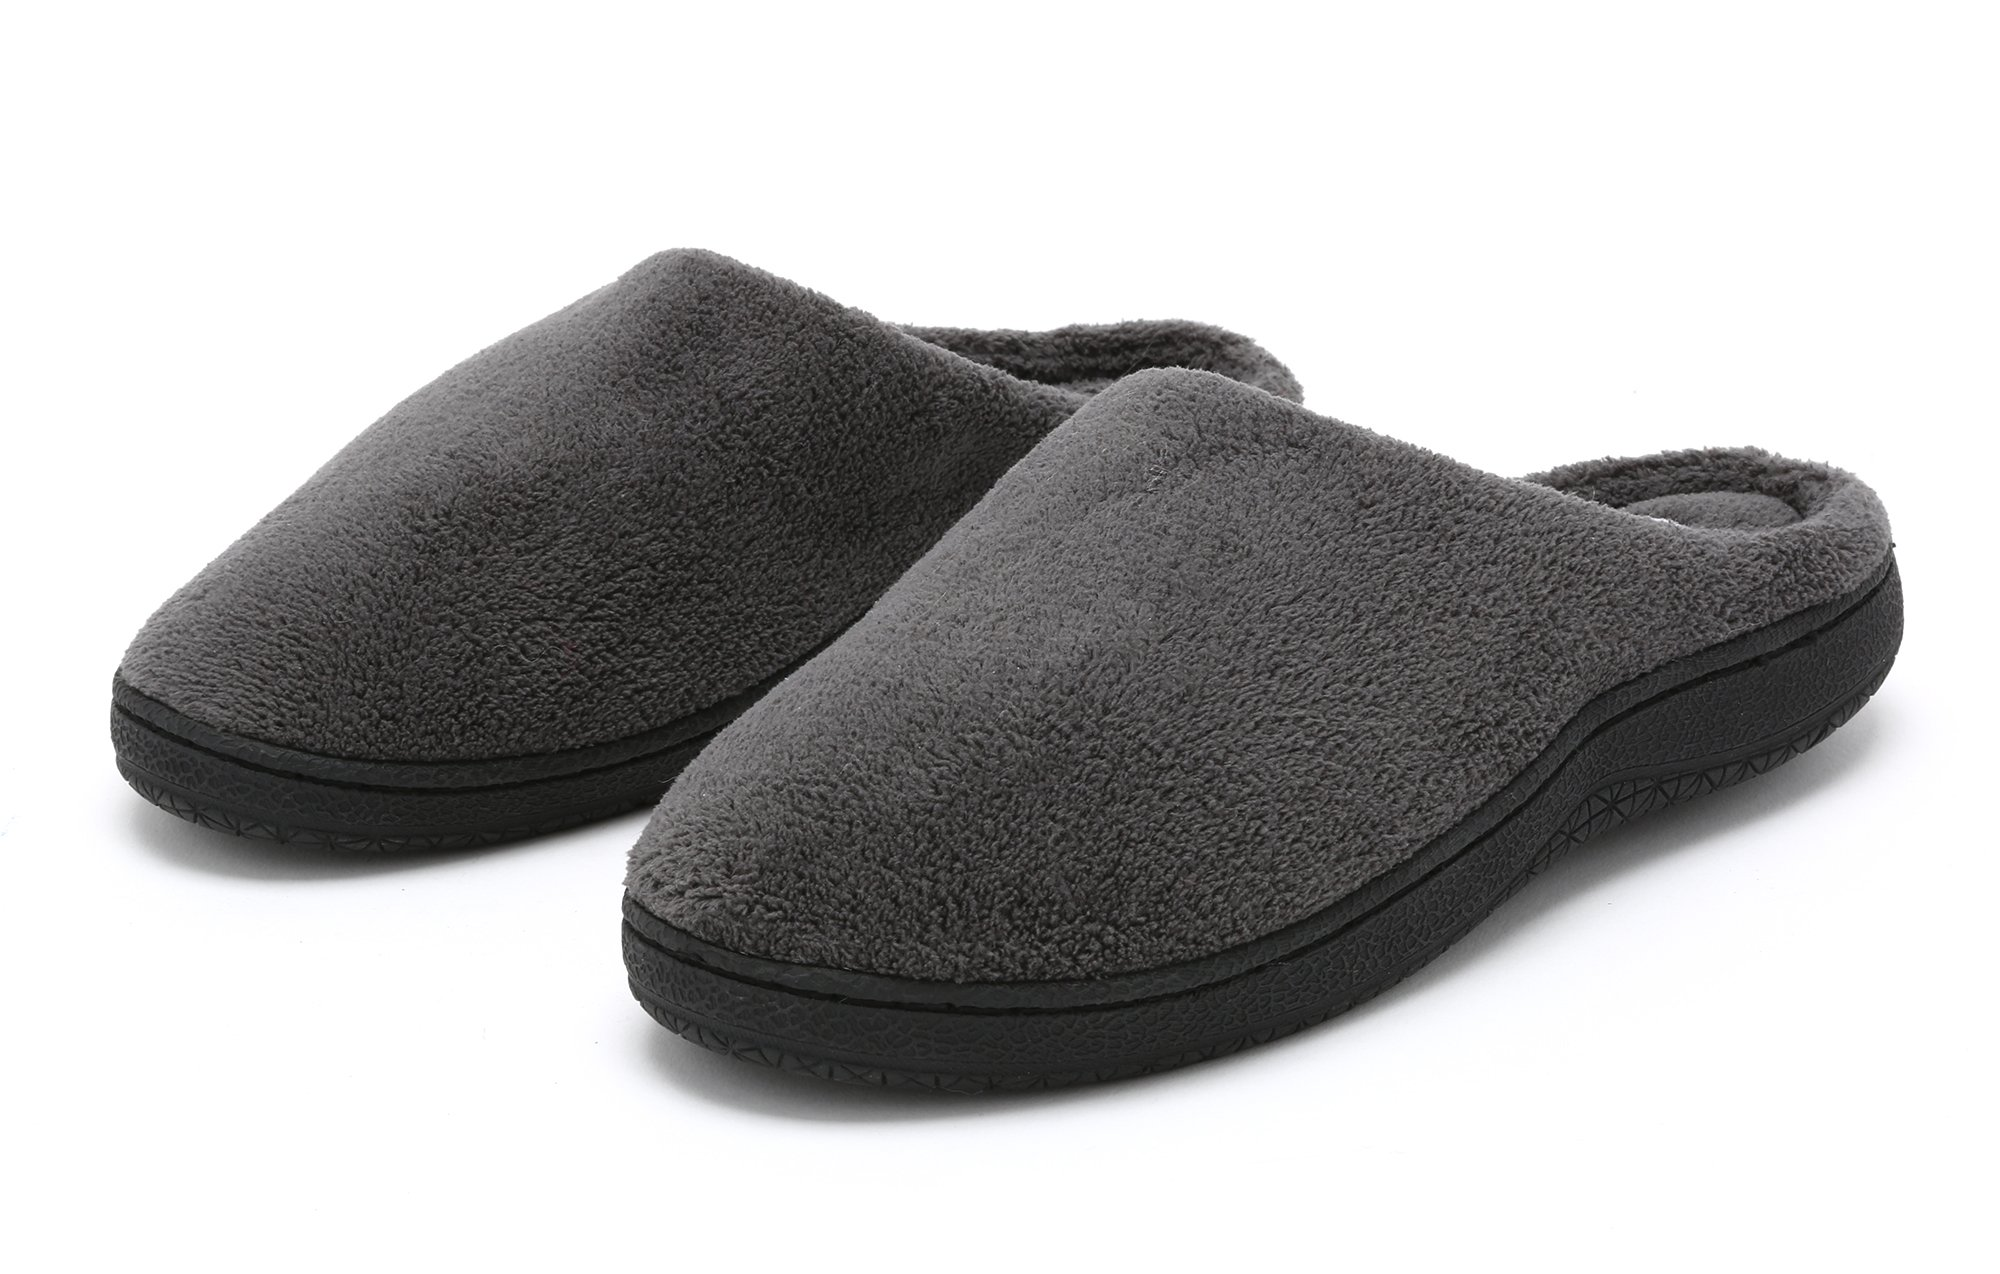 Pembrook Men's Slippers – Gray Size Large - Comfortable Memory Foam + Soft Fleece. Indoor and Outdoor Non-Skid Sole - Great Plush Slip On House Shoes for adults, Men, Boys